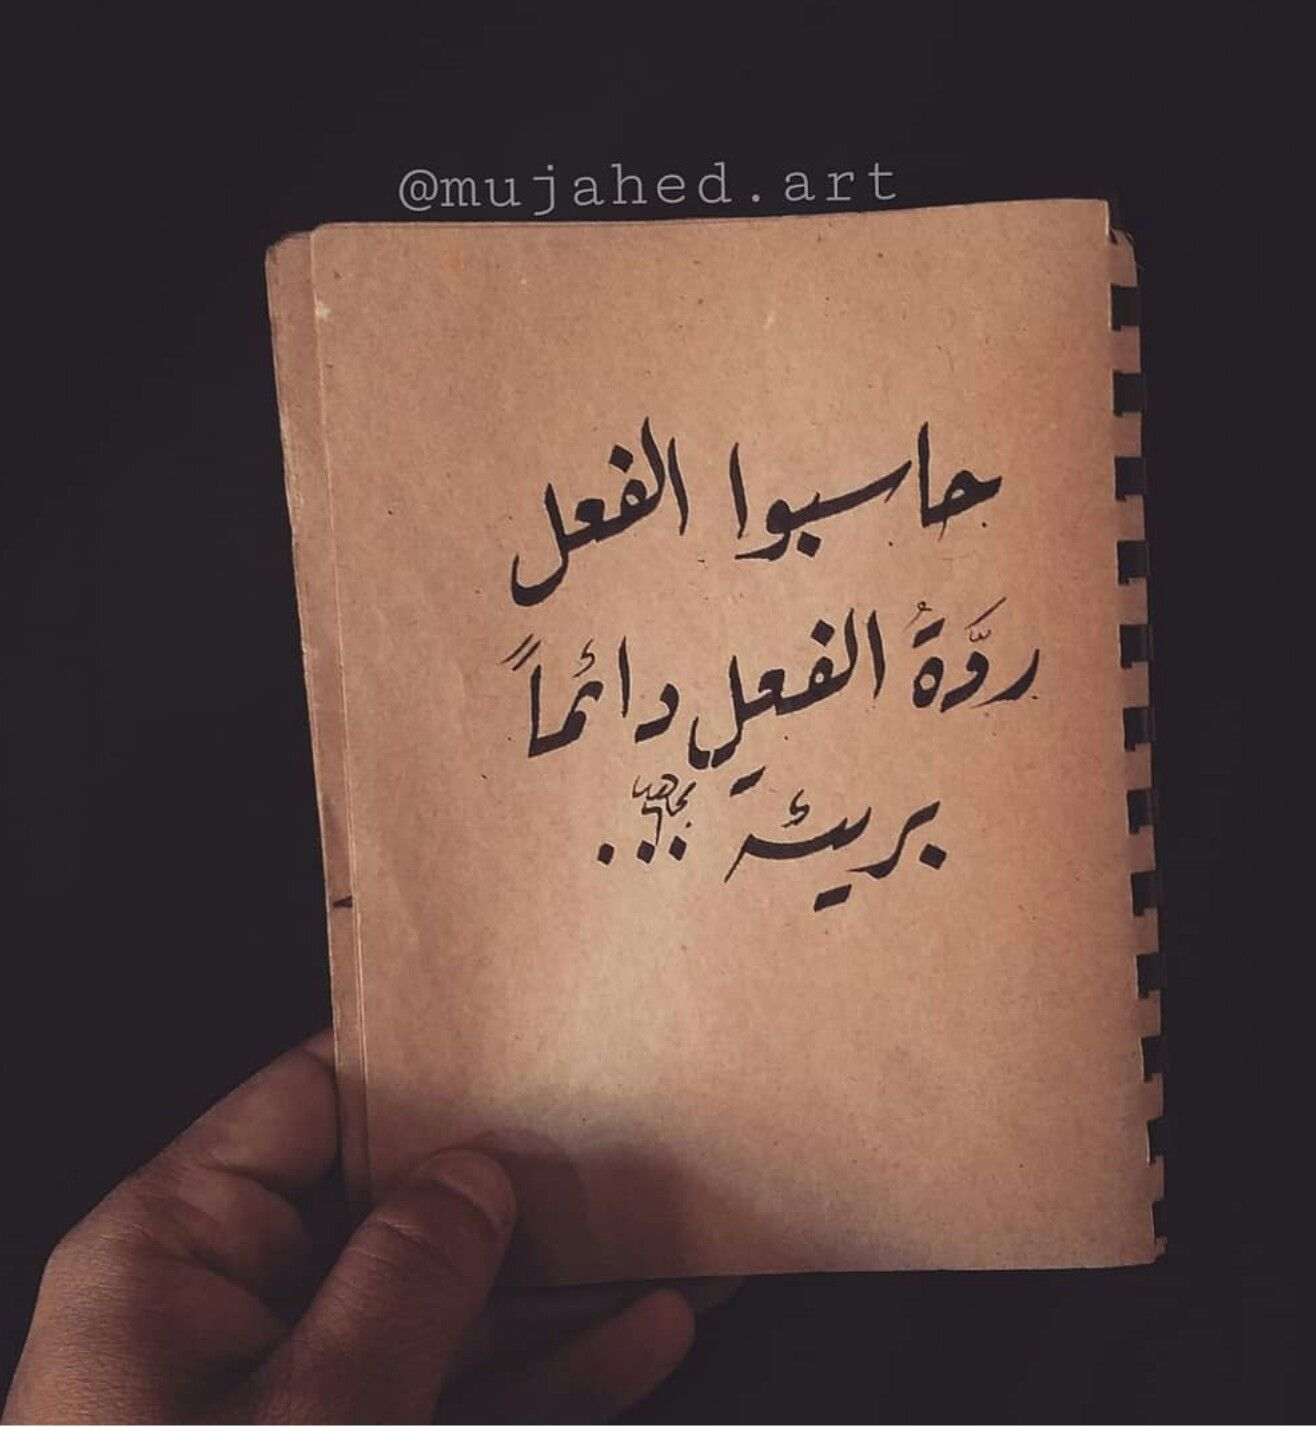 Soltera Frases Calligraphy Arabic Calligraphy Y Math T